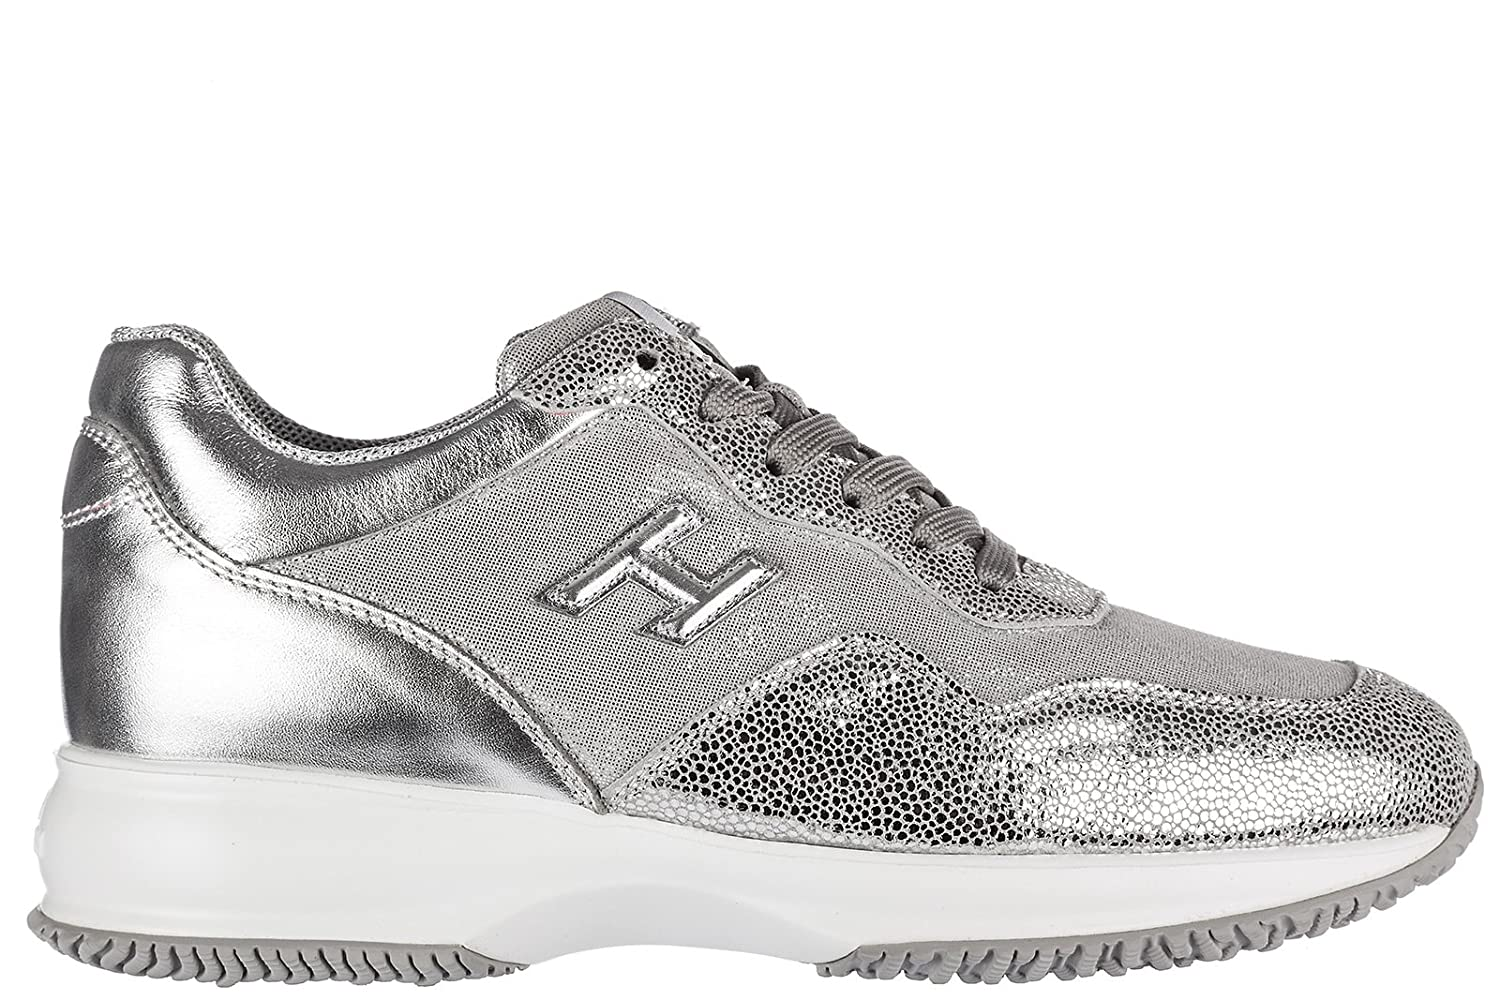 Amazon.com | Hogan Womens Shoes Leather Trainers Sneakers Interactive h3d Silver US Size 10 HXW00N0W661FPUB200 | Fashion Sneakers